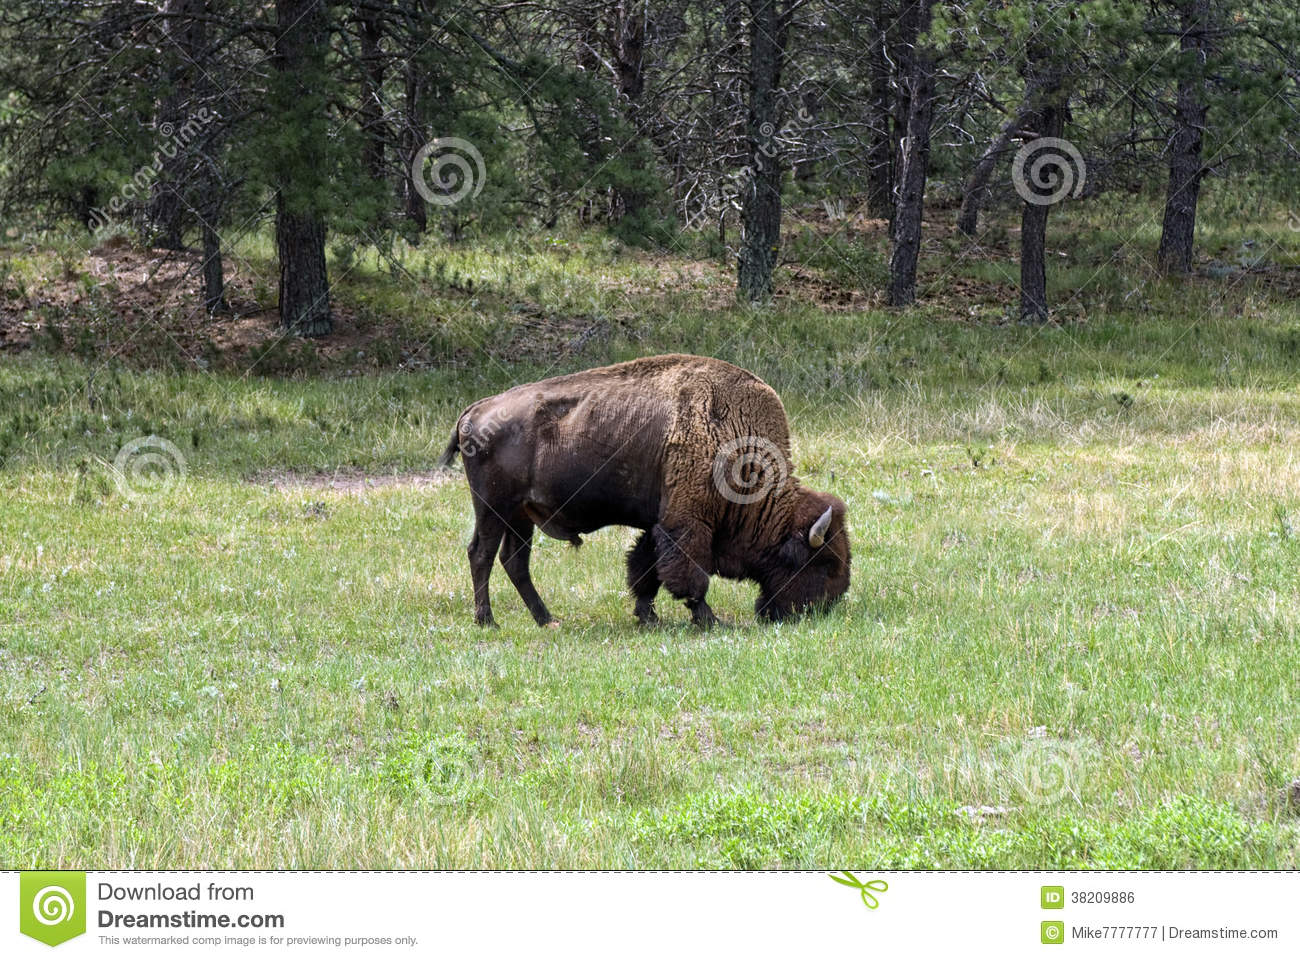 Amerikansk bison på grässlätten, Custer State Park, South Dakota, USA